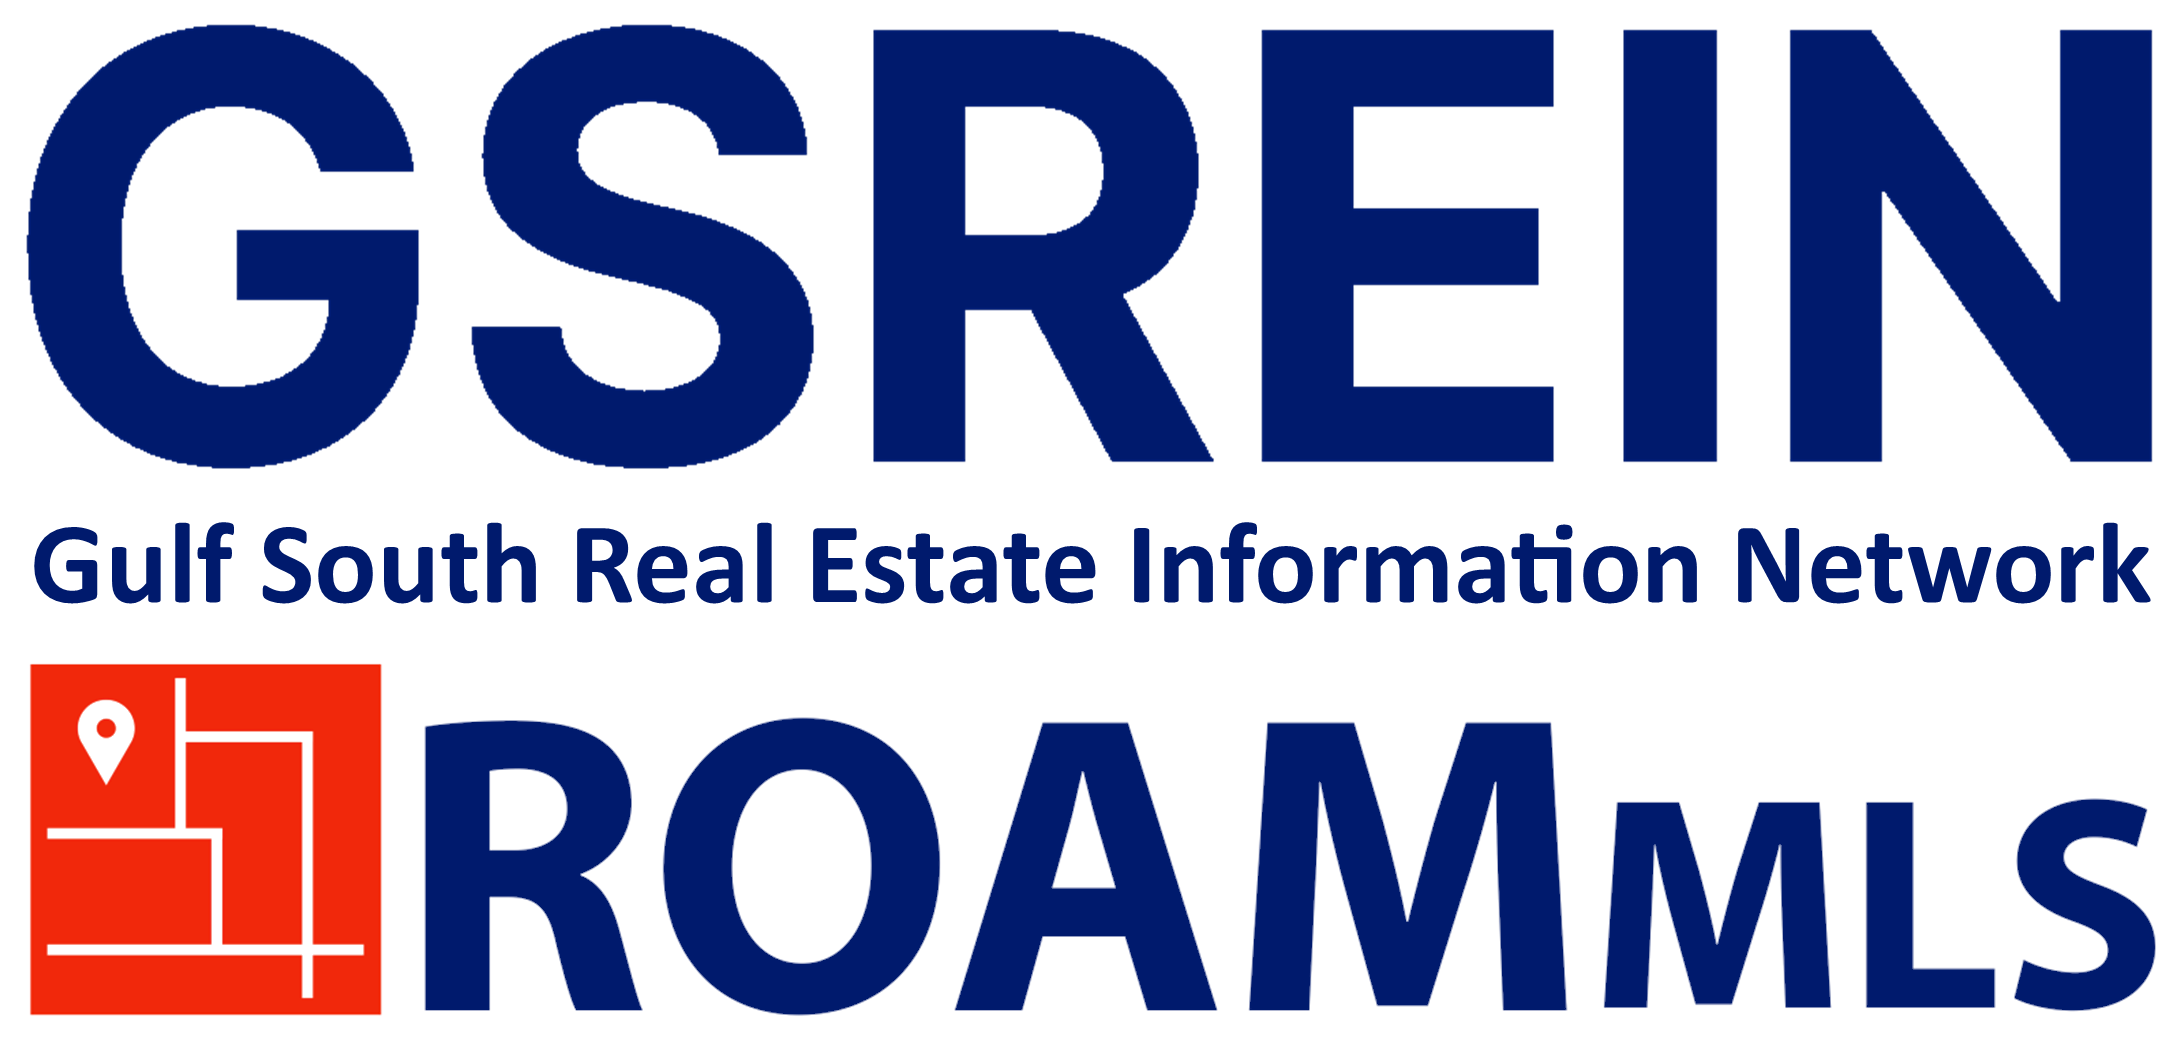 Gulf South Real Estate Information Network logo